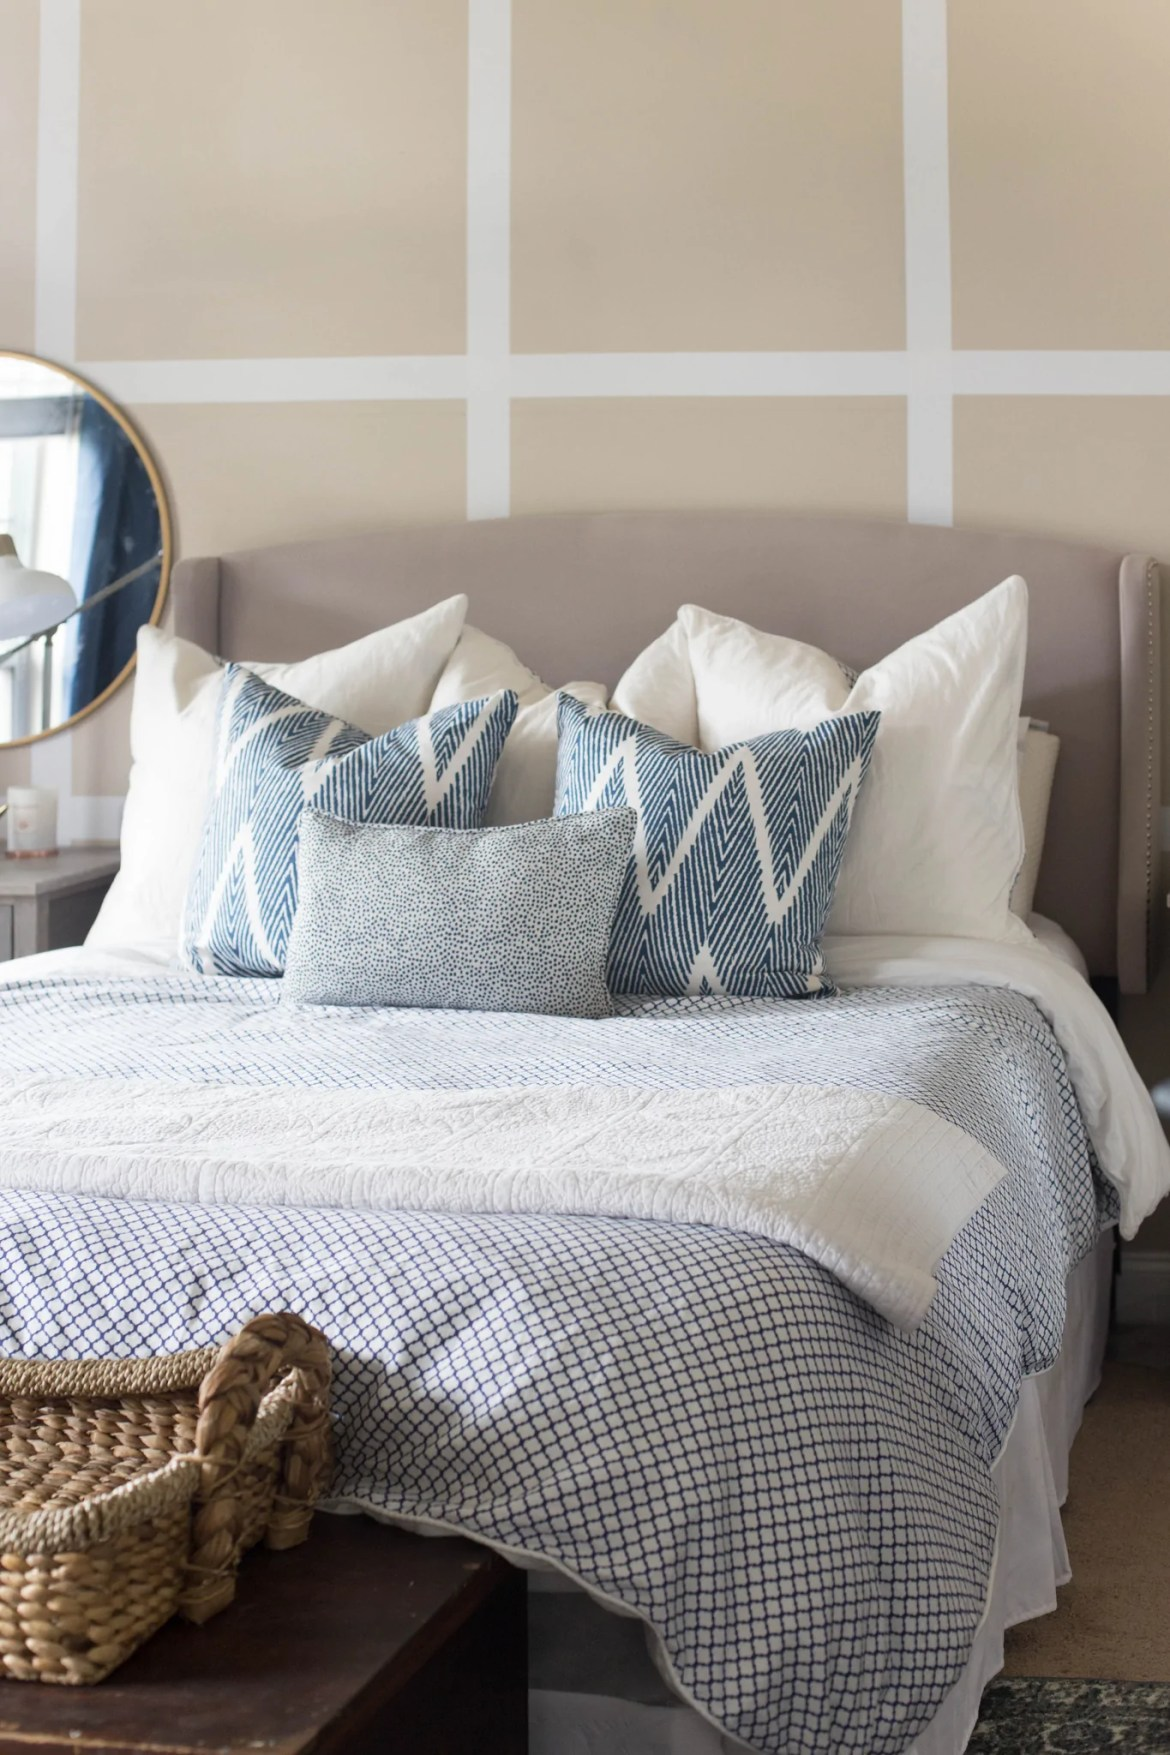 7 Unexpected Things to Stripe | Create a fun accent wall with Easy Stripe vinyl striping. No painting required!